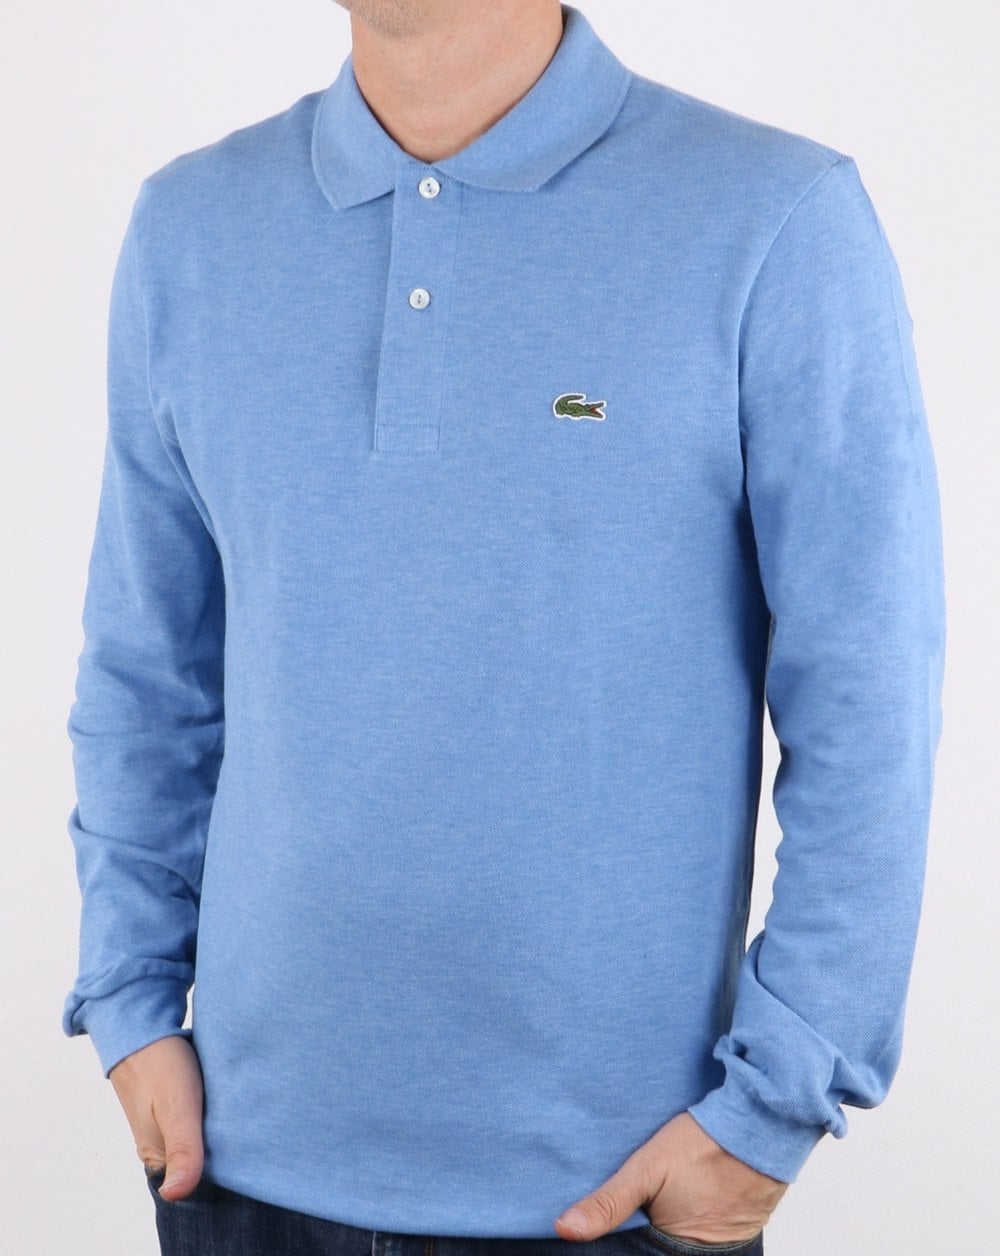 ec7c53d2c Lacoste Lacoste Long Sleeve Polo Shirt Light Blue